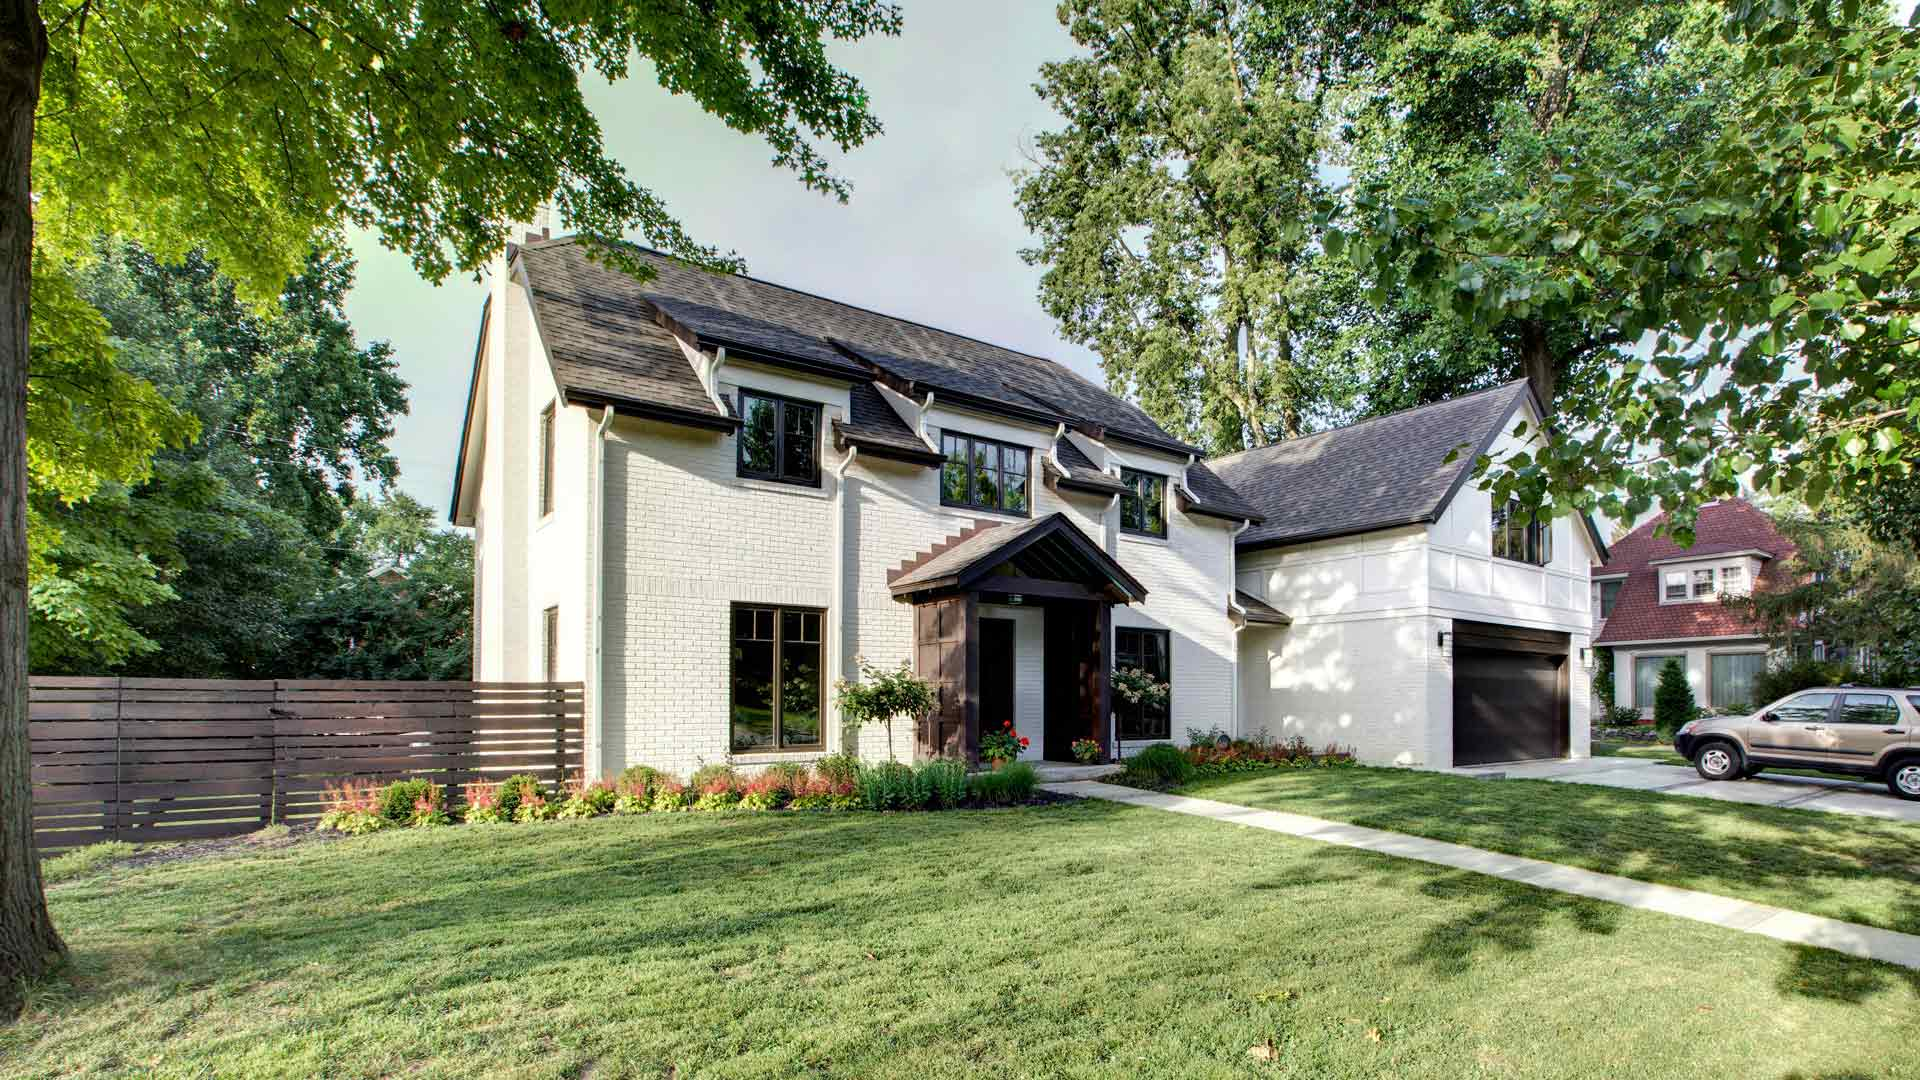 Front Exterior Elevation features new gable entry porch and Addition - Butler Tarkington Modern Tudor - Indianapolis, IN